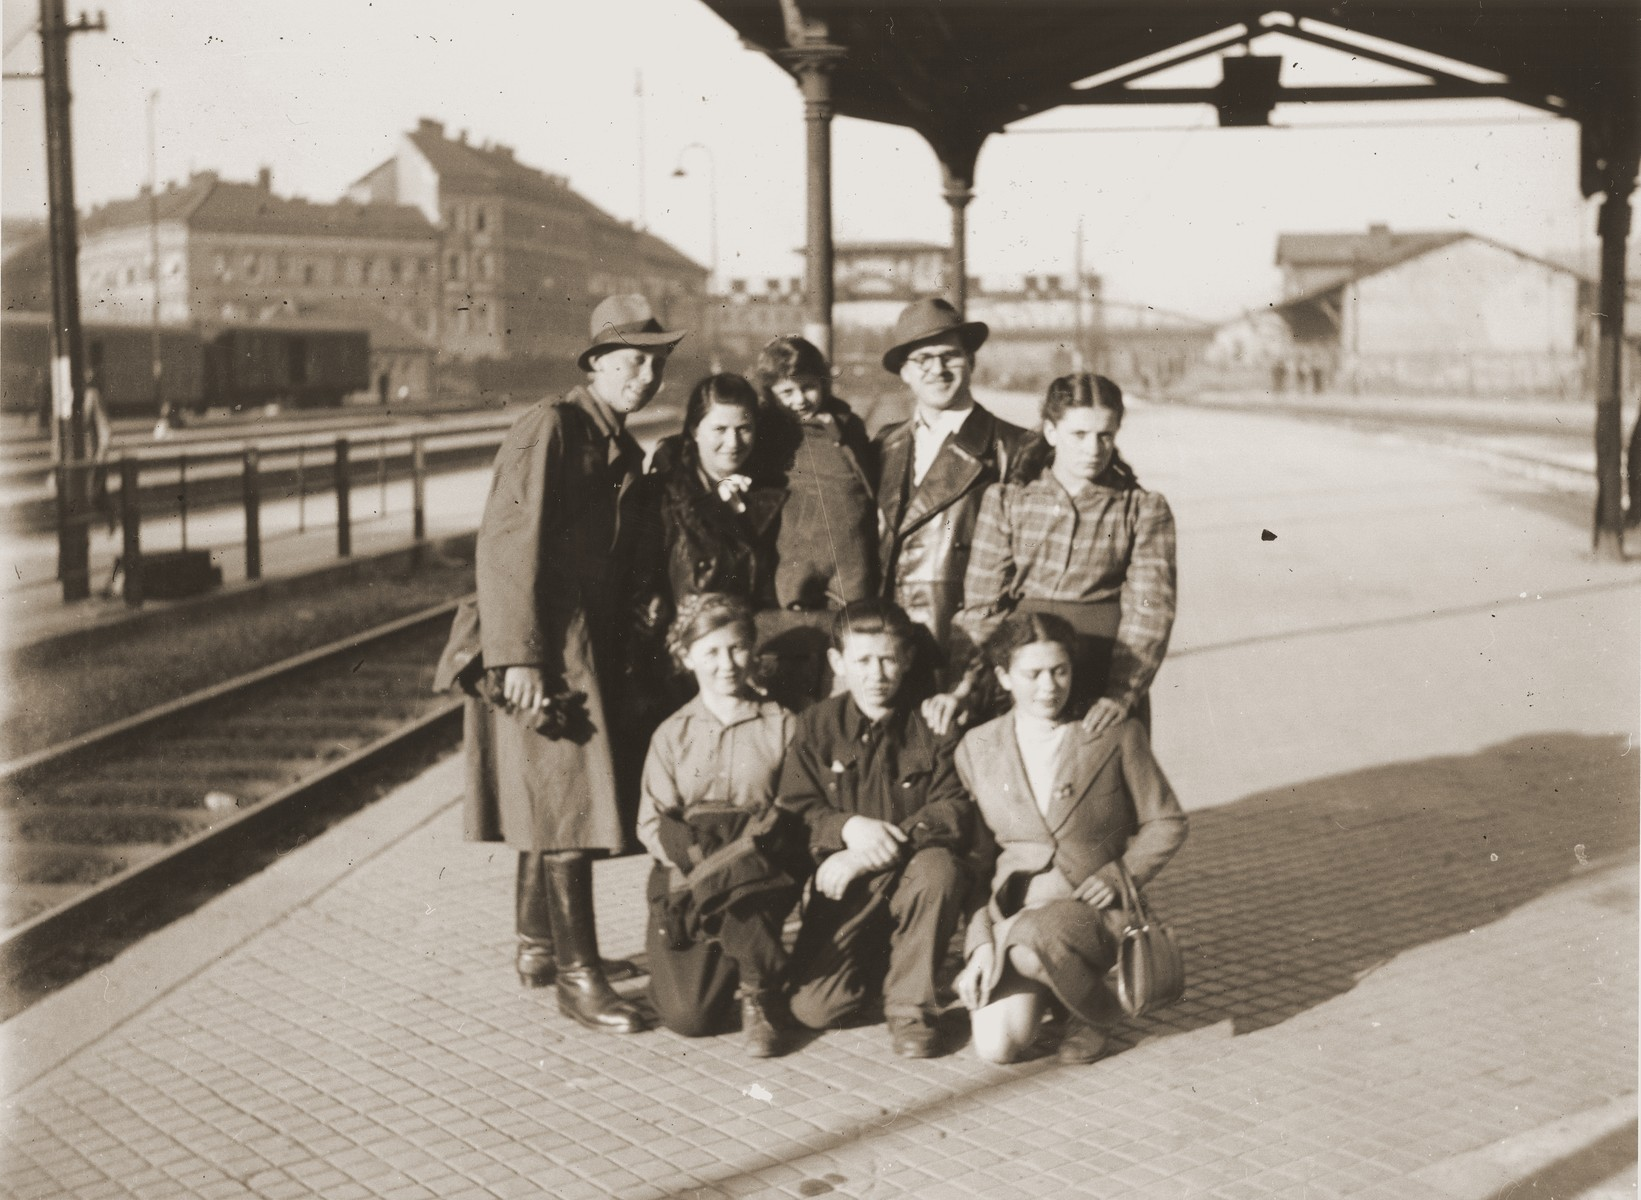 A group of Jewish DPs wait at the Vienna railroad station for a train to take them on the next leg of their journey along the Bricha route to the American Zone of Germany.  In the back row on the right is Brichah leader, Itzchak Wenglishevski.